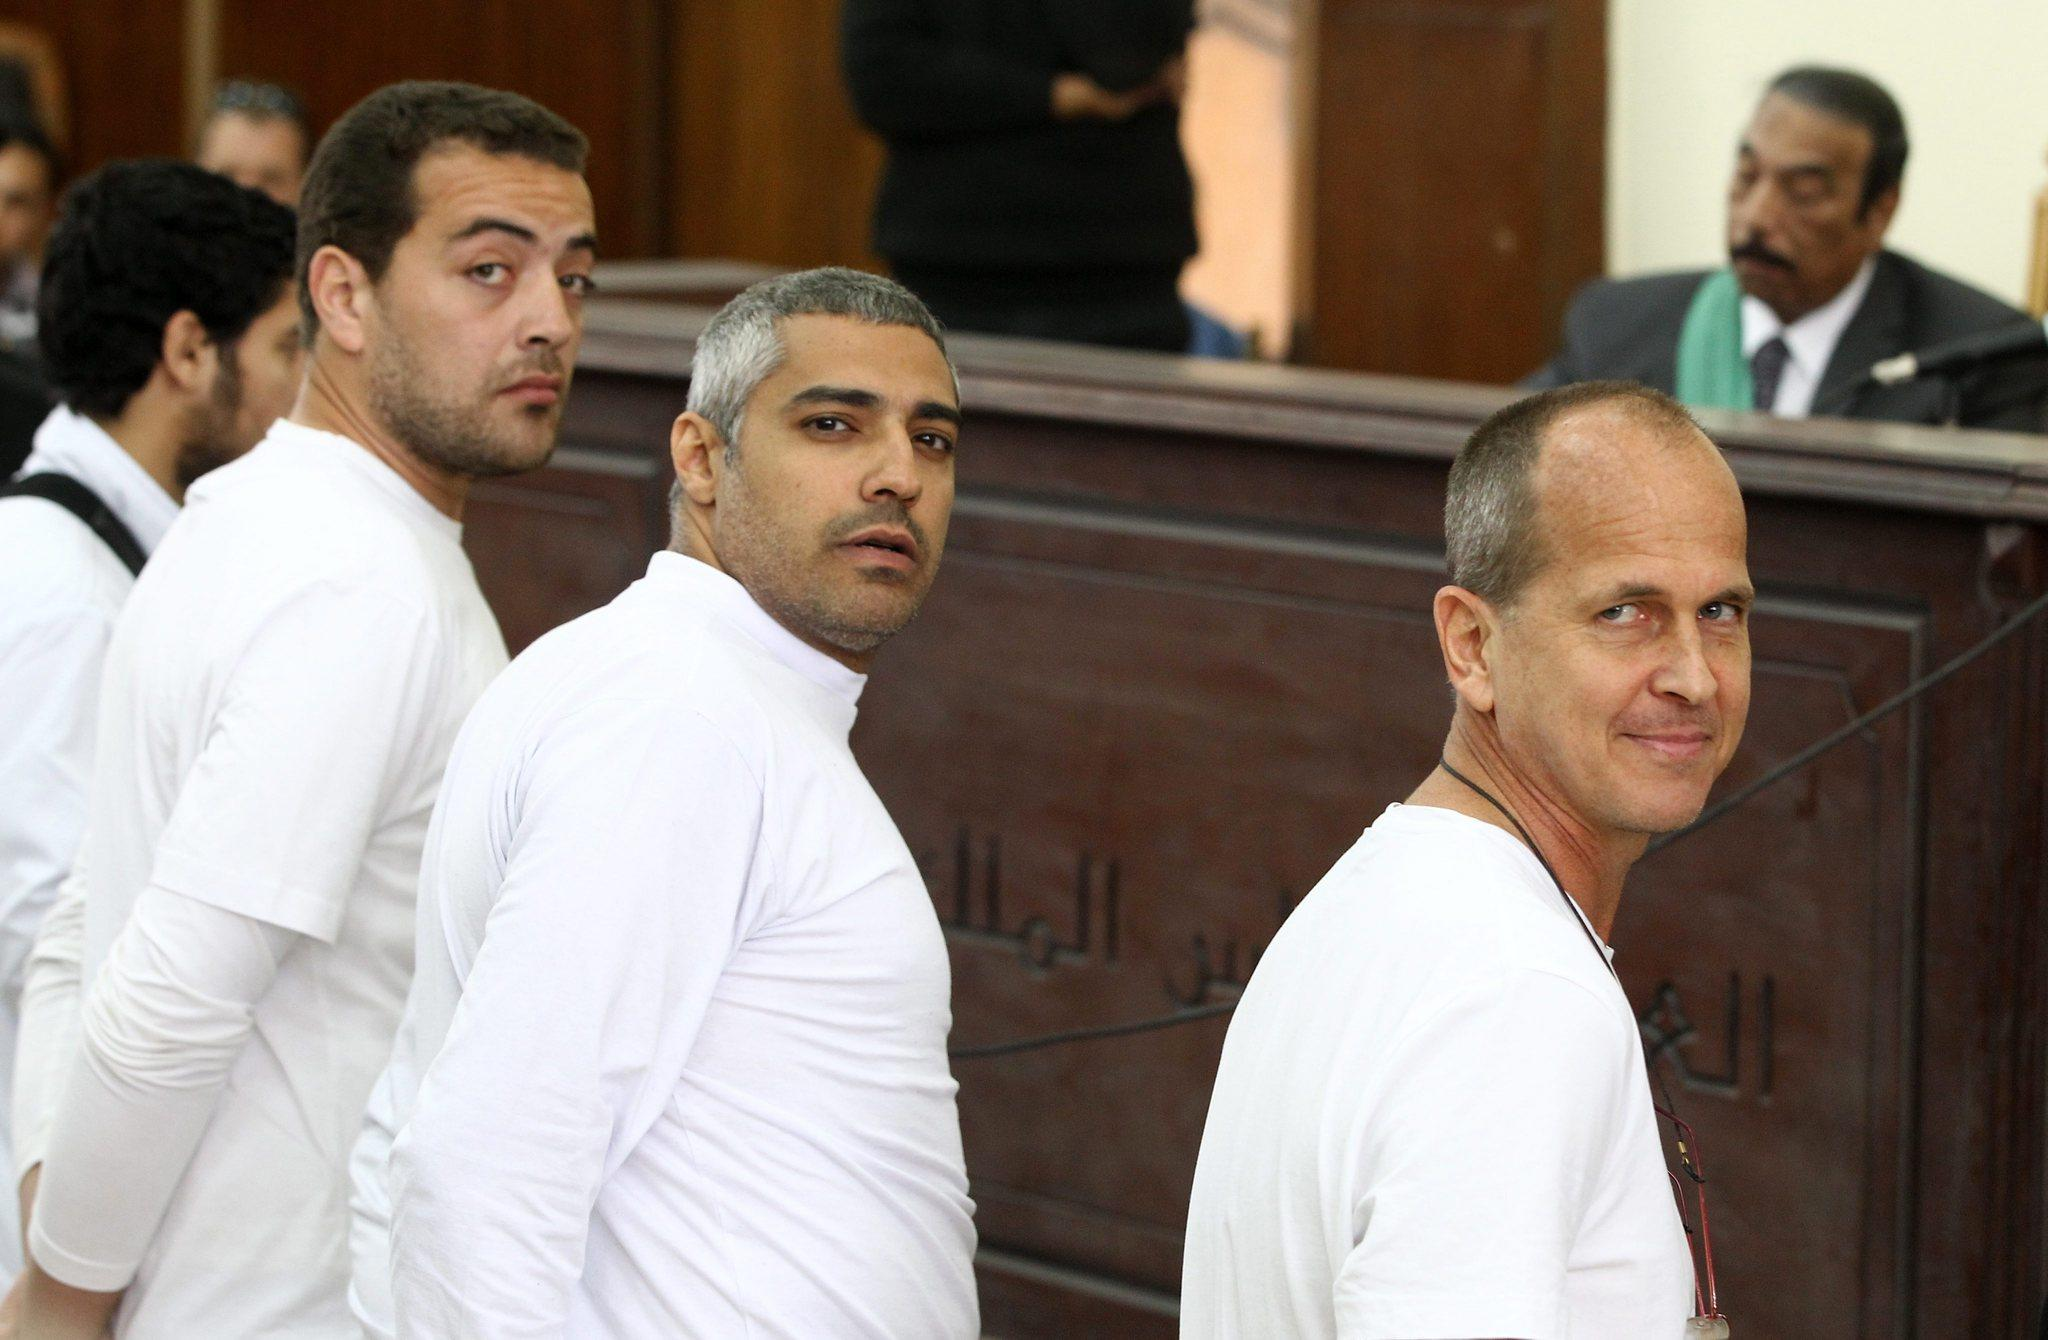 Australian journalist Peter Greste, right, and co-defendants stand in front of the judge's bench in Cairo on March 31 during their trial for allegedly supporting a terrorist group and spreading false information.